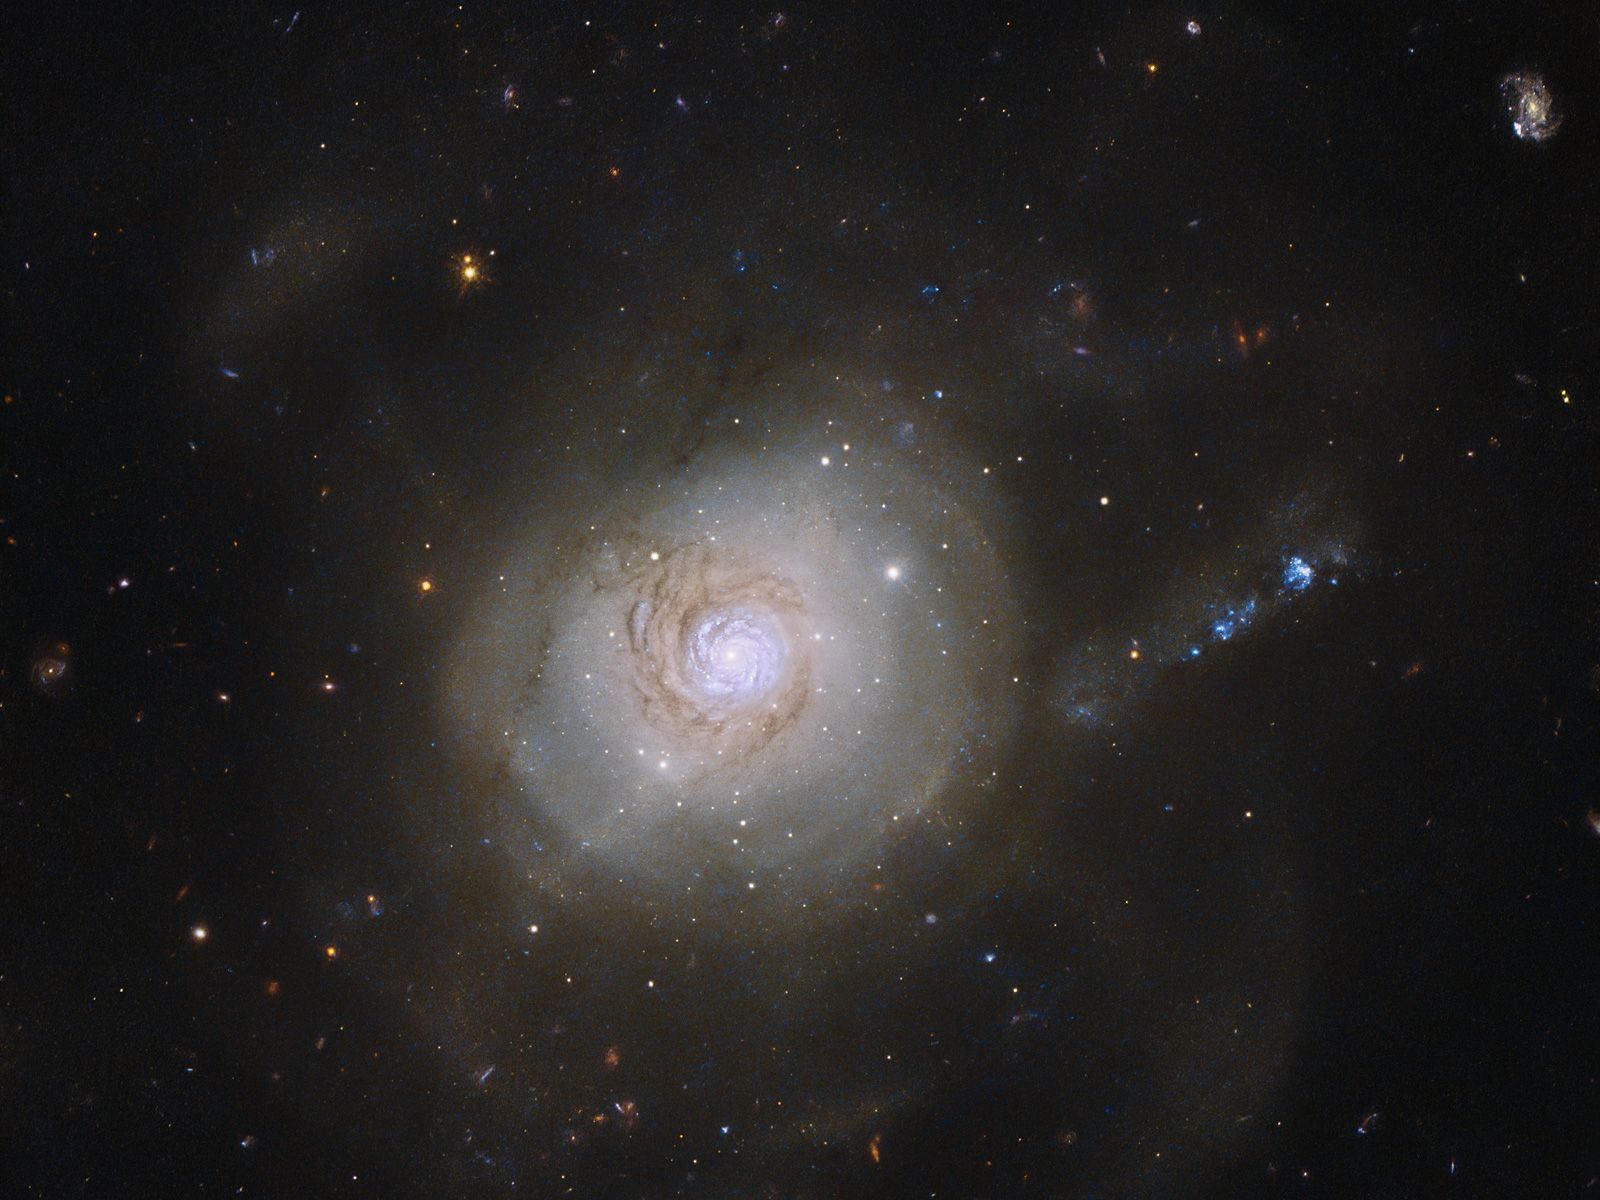 Ngc 7252 It Is Also Called Atoms For Peace Galaxy Only Rarely Does An Astronomical Object Have A Polit Hubble Space Telescope Space Telescope Hubble Space